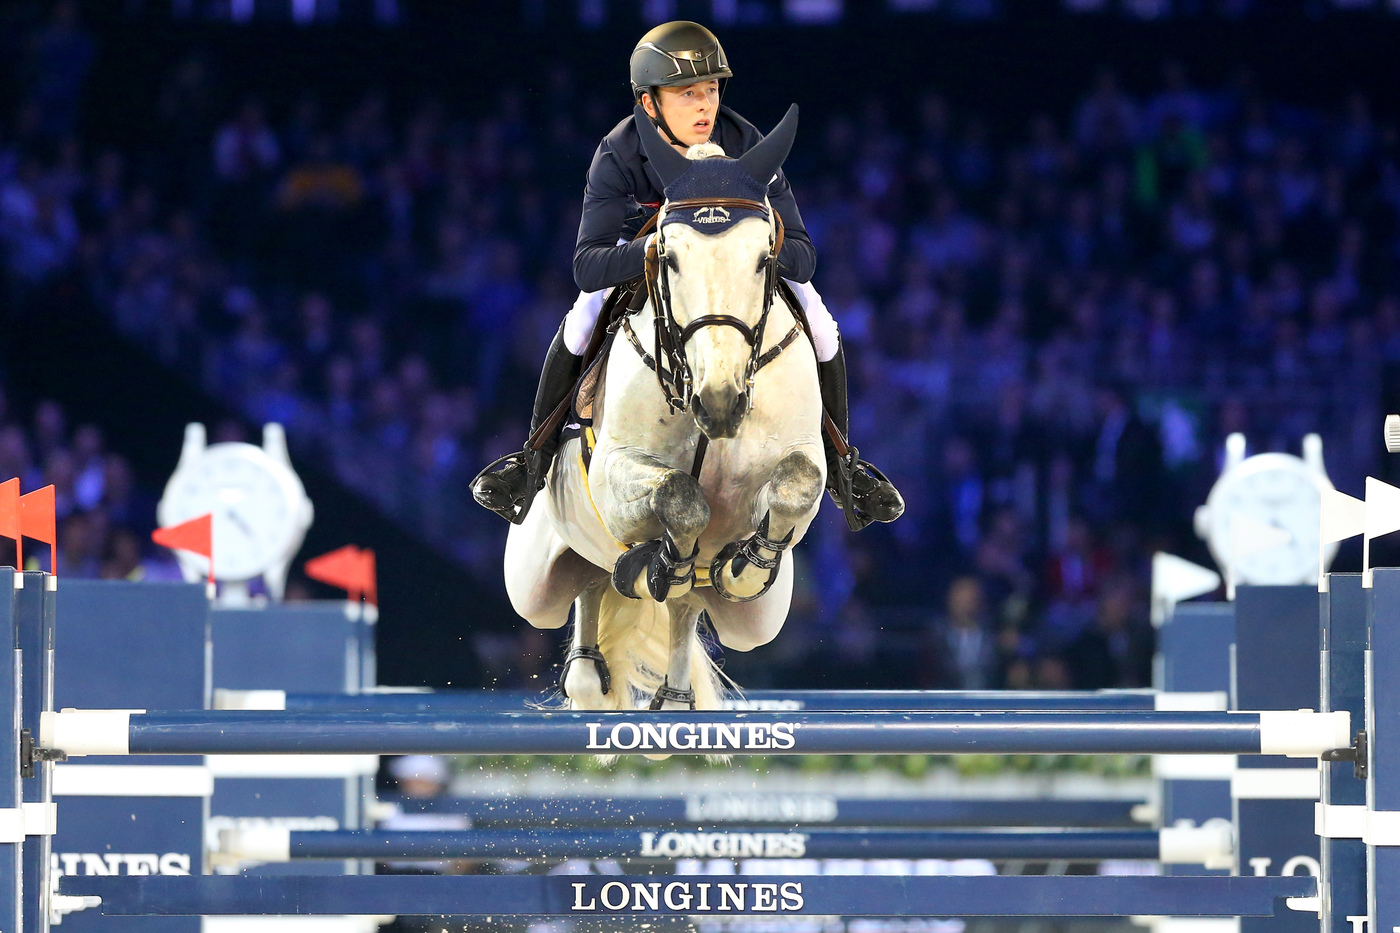 Longines Show Jumping Event: Gregory Wathelet, champion of the Longines Masters of Paris 4